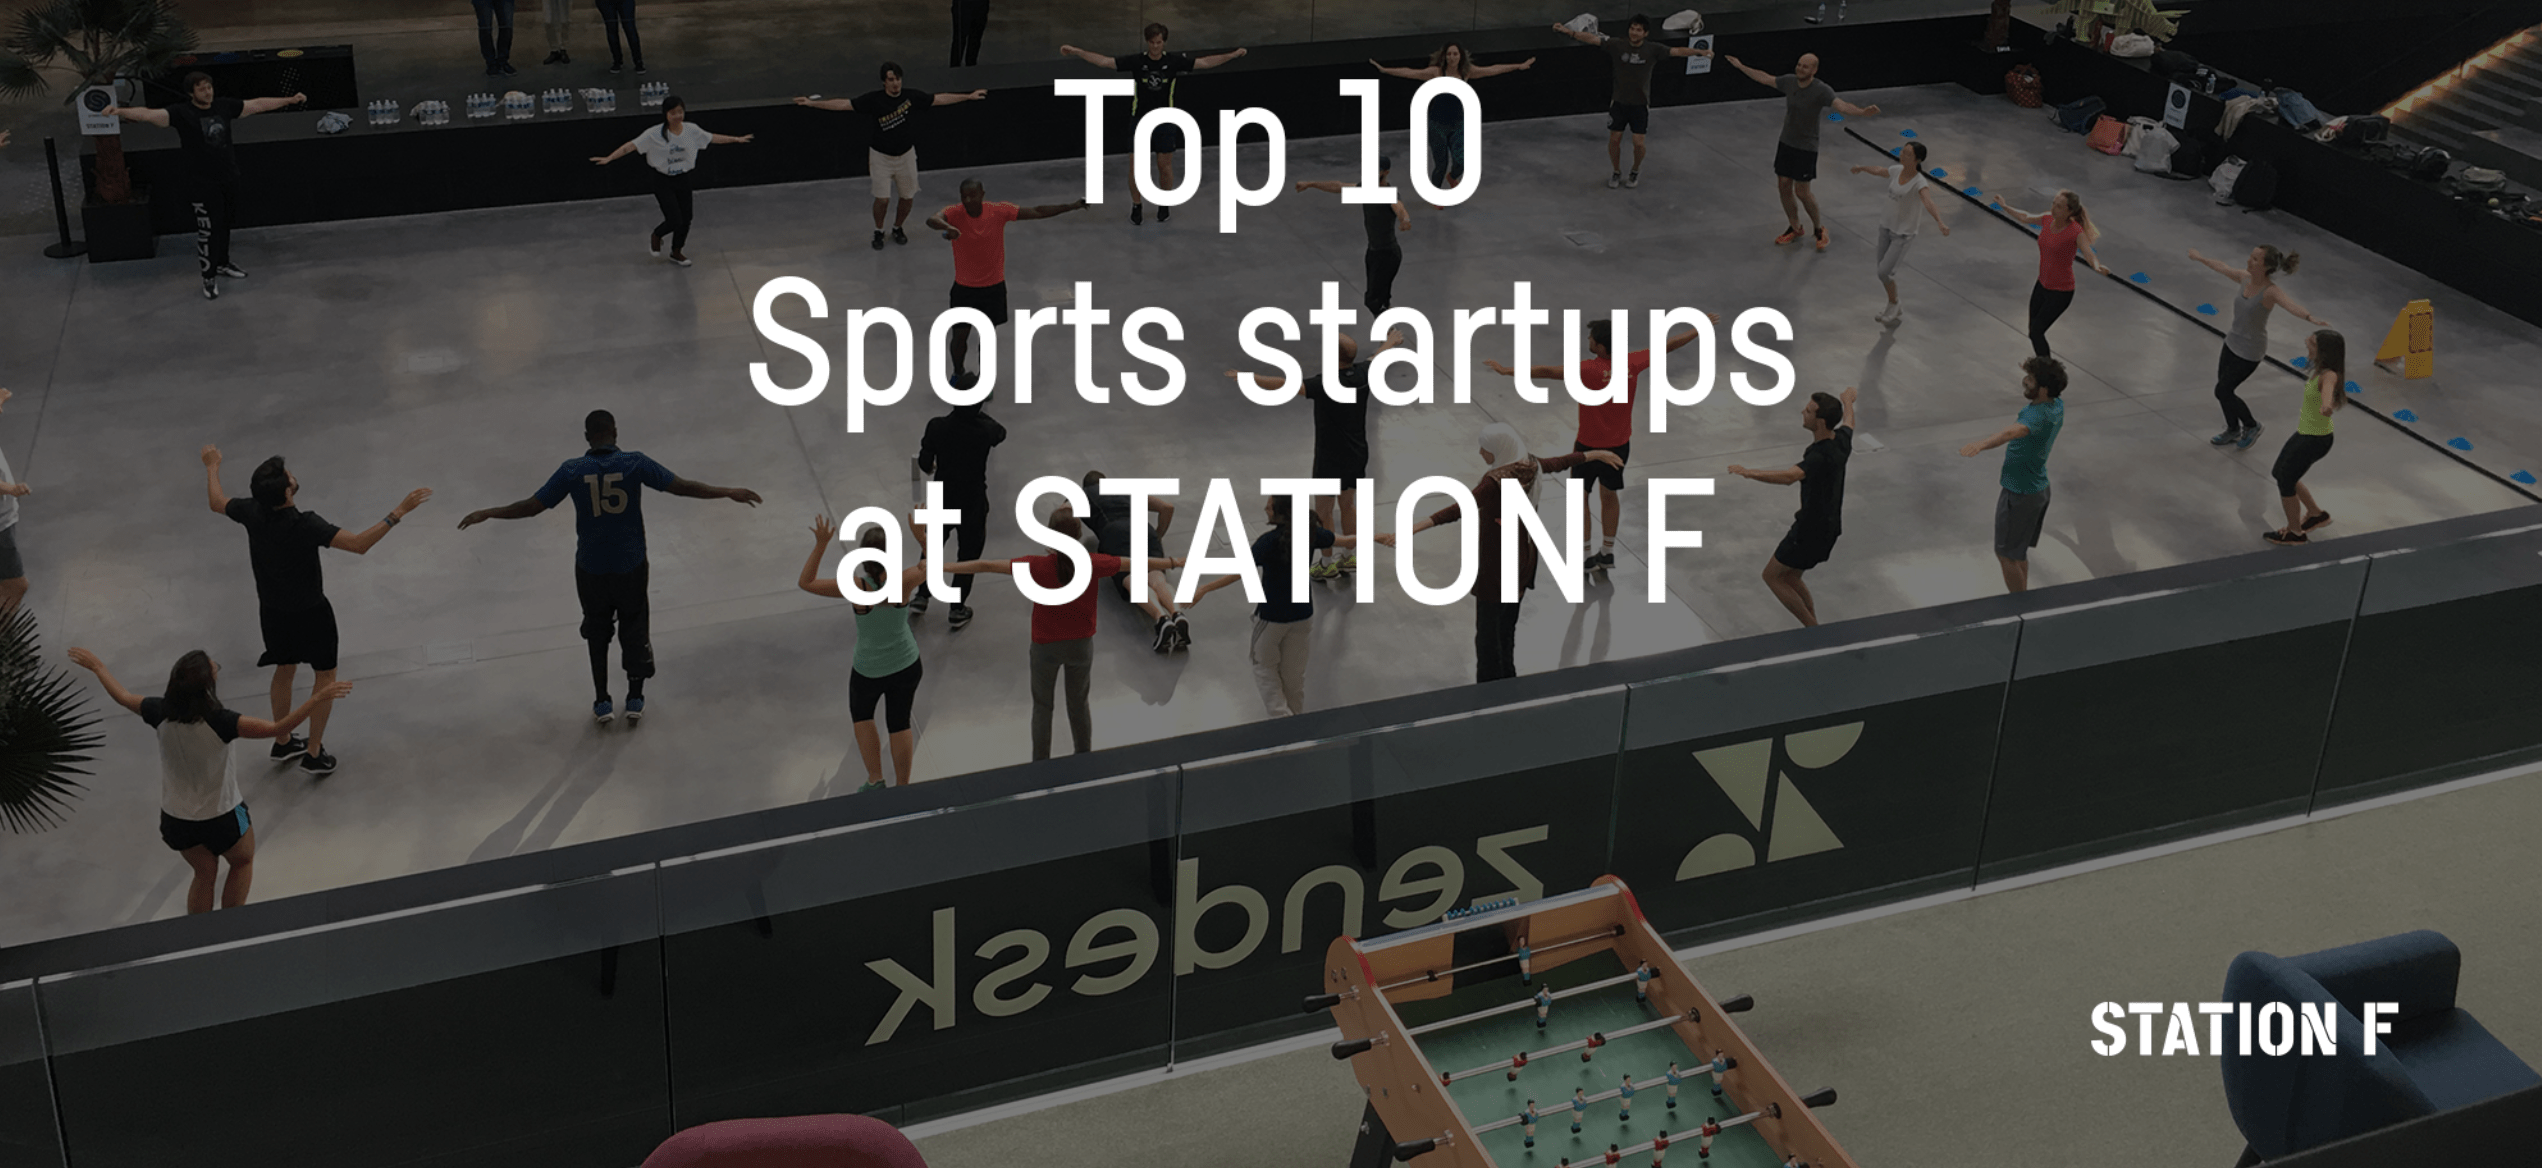 Top 10 Sports startups at STATION F